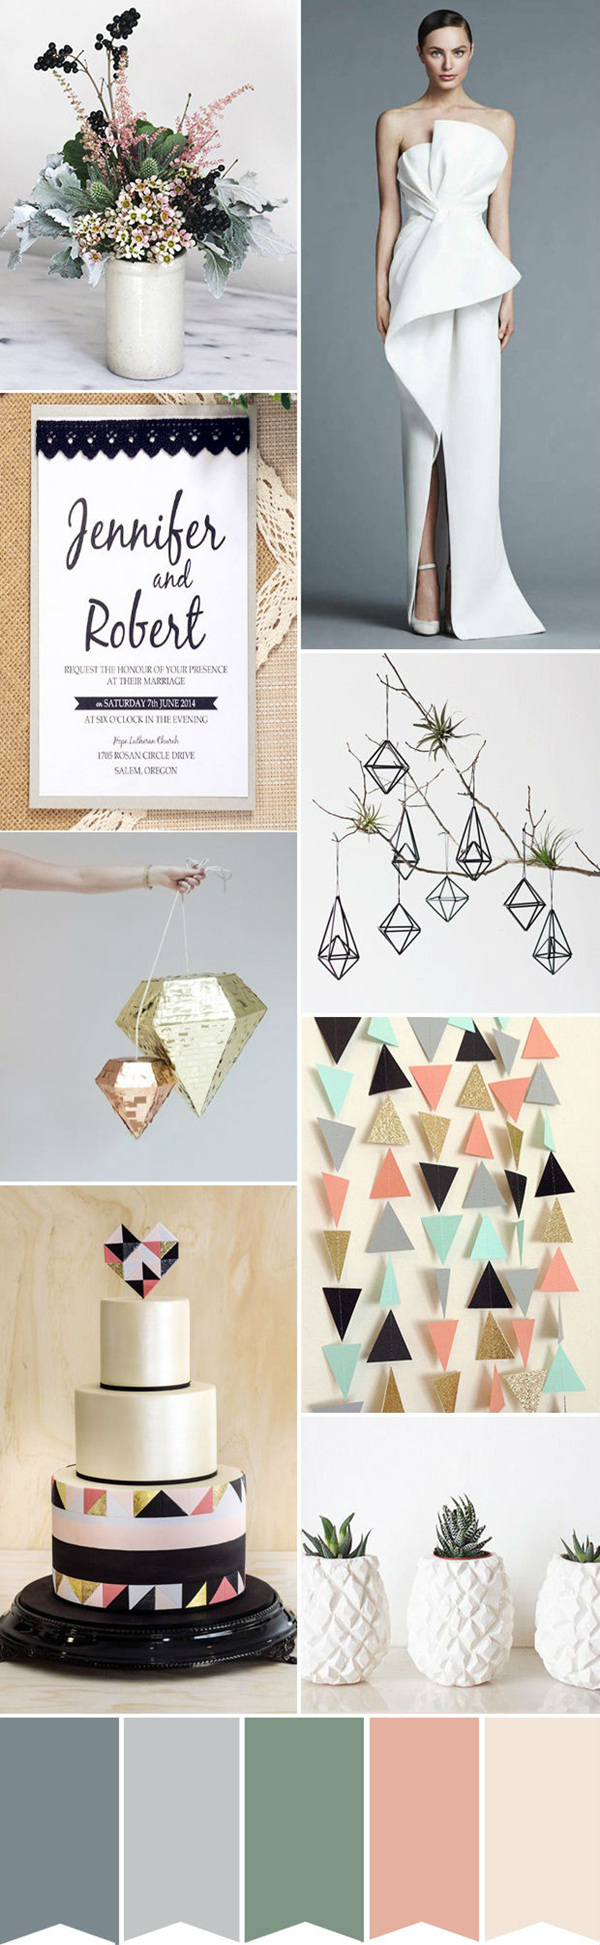 modern geometric wedding ideas with  color palettes